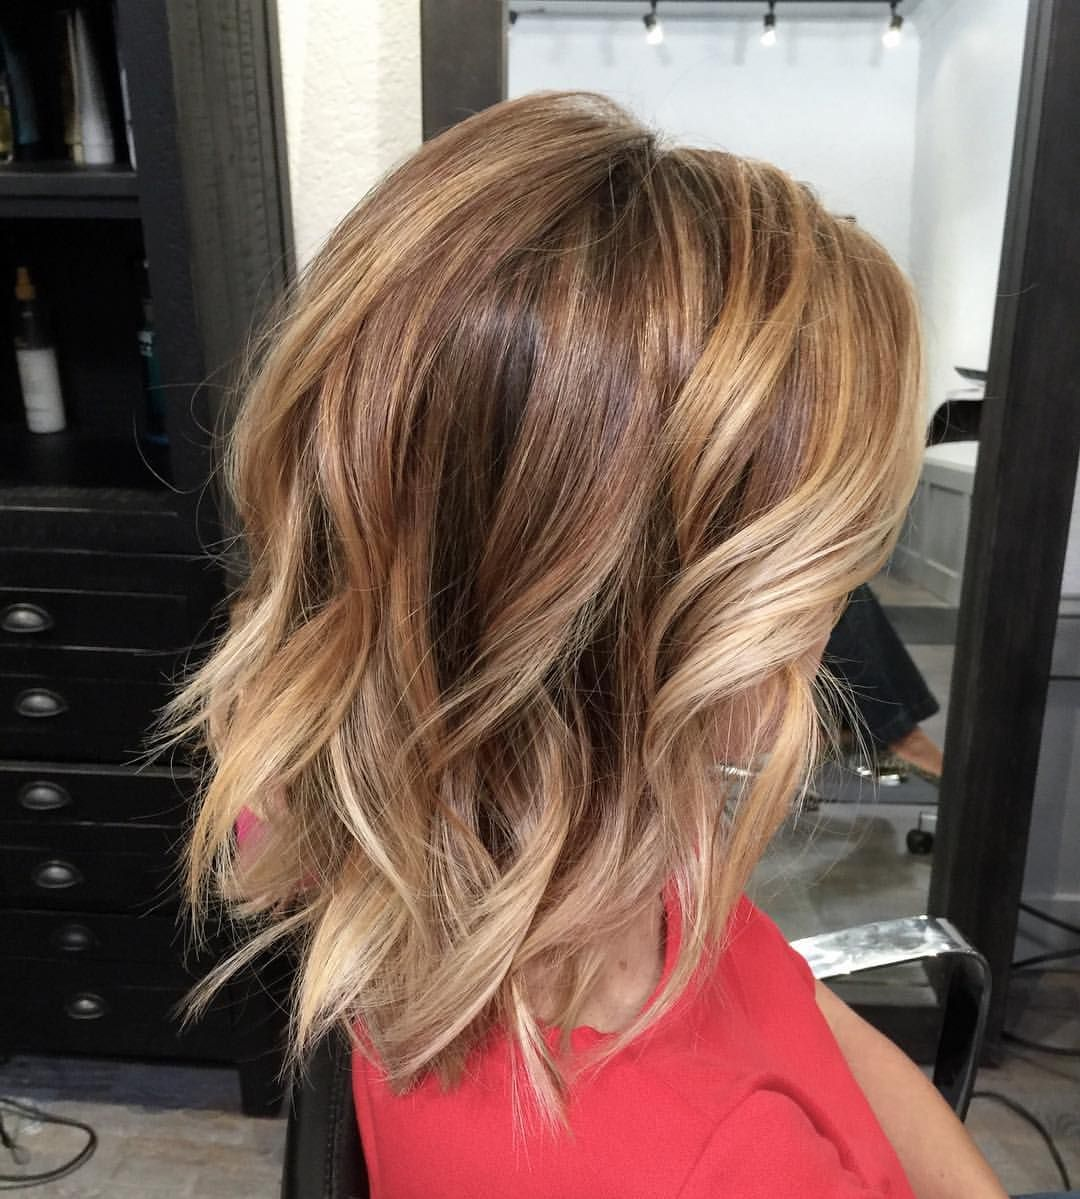 Cute Hairstyle Bronde Bob With Beach Waves Beautiful Hair And